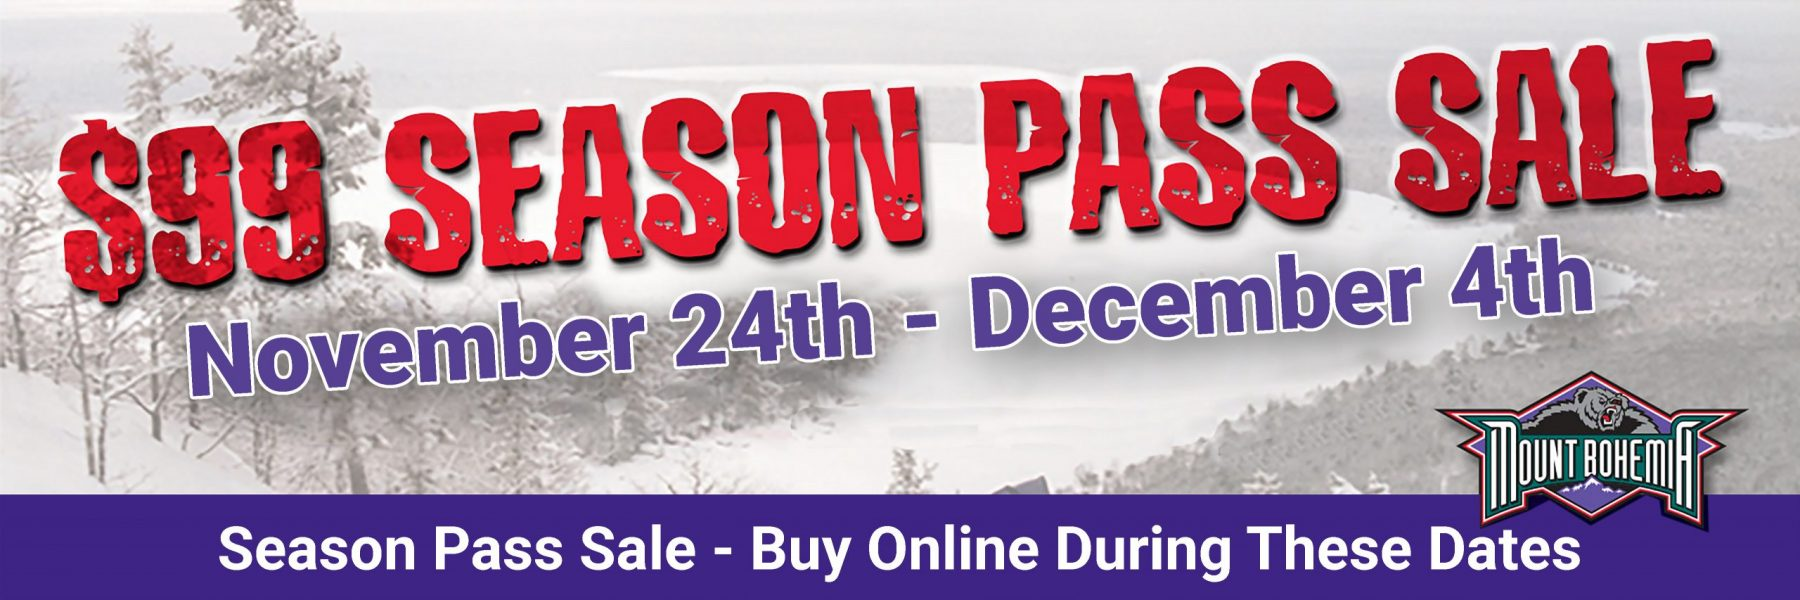 99 season pass sale 21